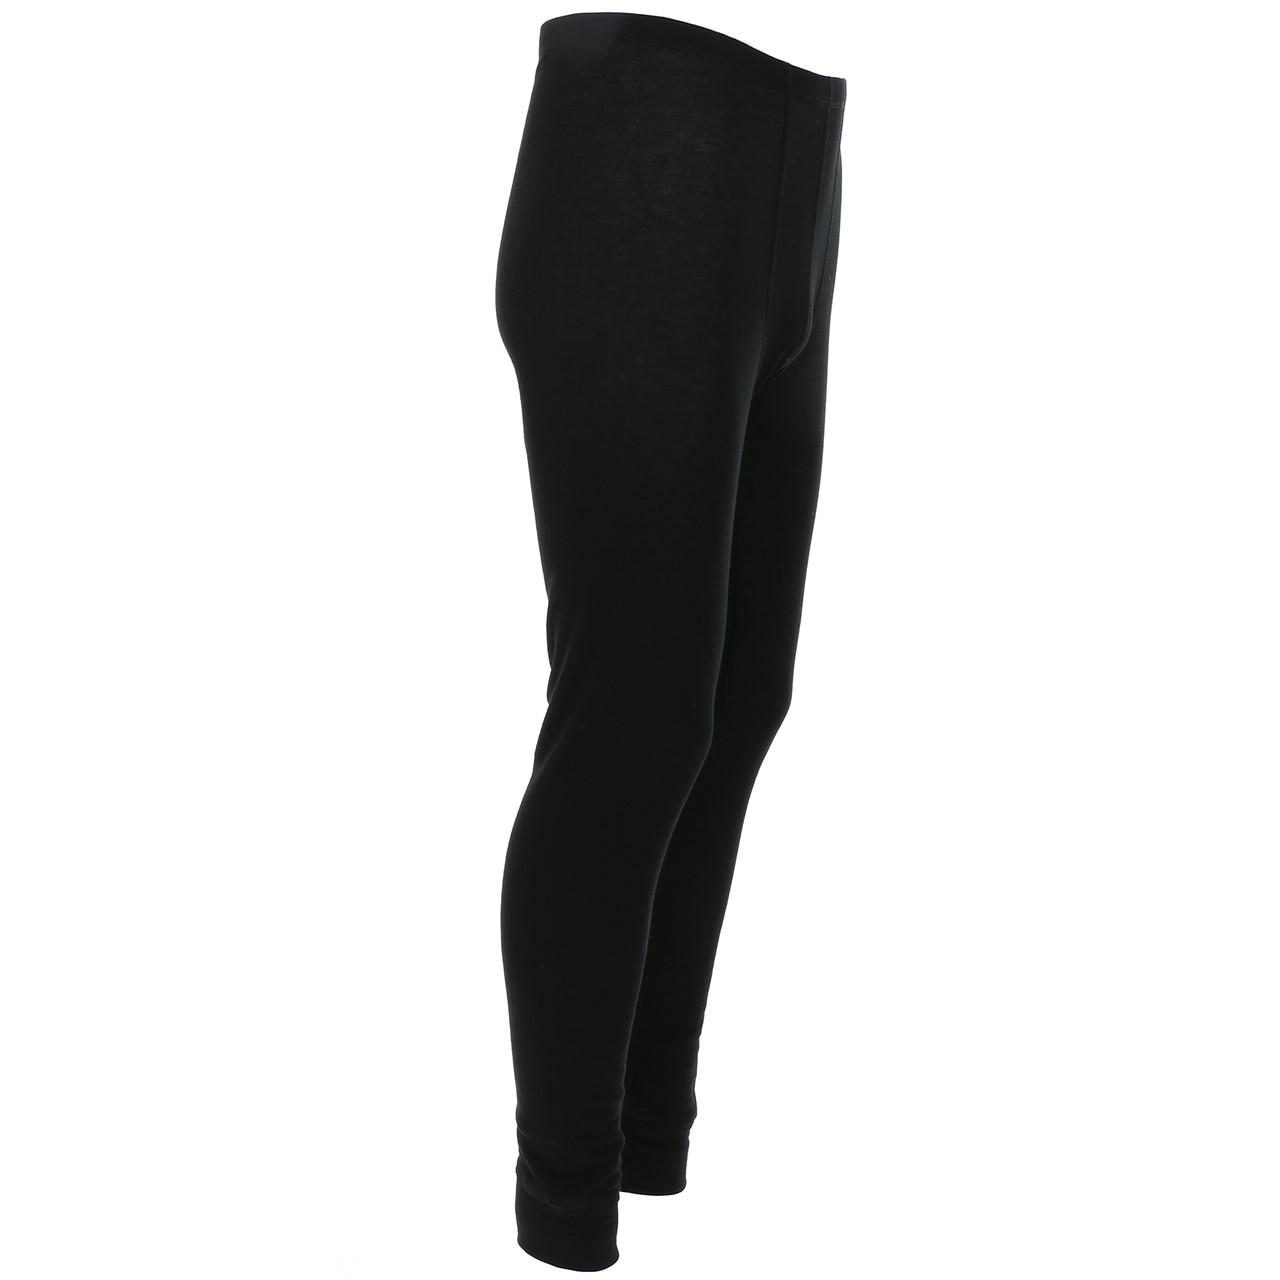 Tights-Thermal-Hot-Winter-Odlo-Warm-Black-Tights-Black-85327-New thumbnail 4